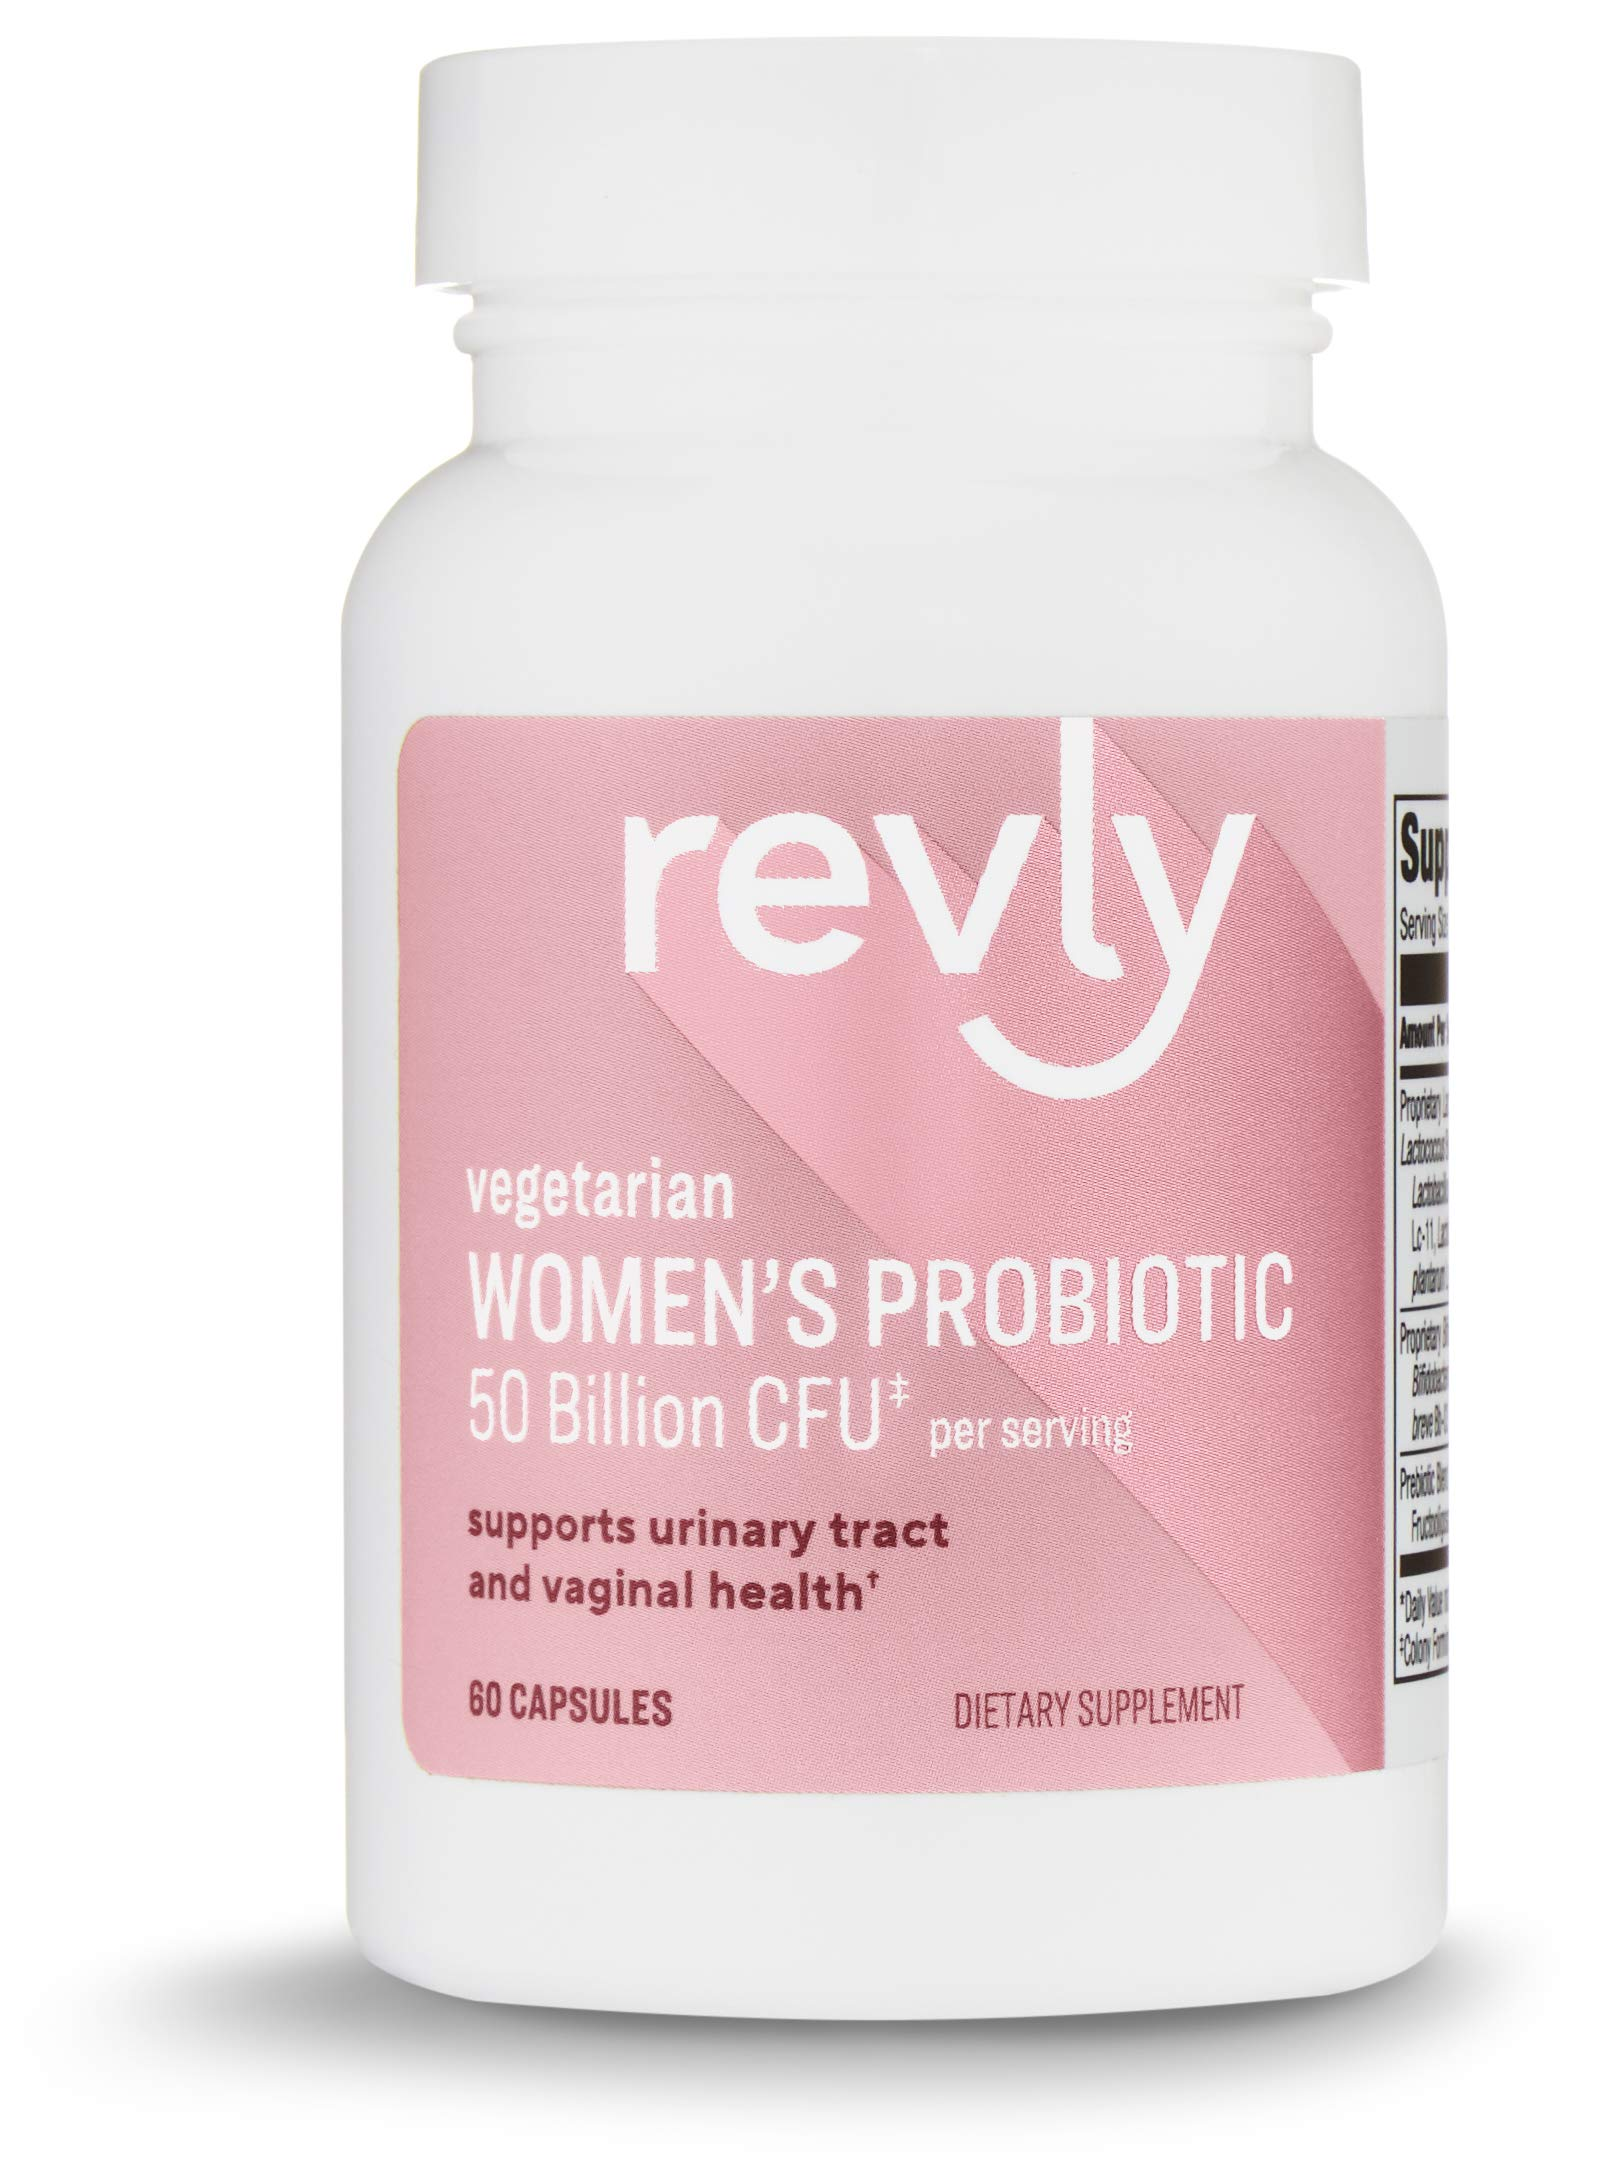 Amazon Brand - Revly One Daily Women's Probiotic, 50 Billion CFU (7 strains), Supports Urinary Track and Vaginal Health, Lactobaccilus and Bifidobacteria blend, 60 Capsules (60 Day Supply)